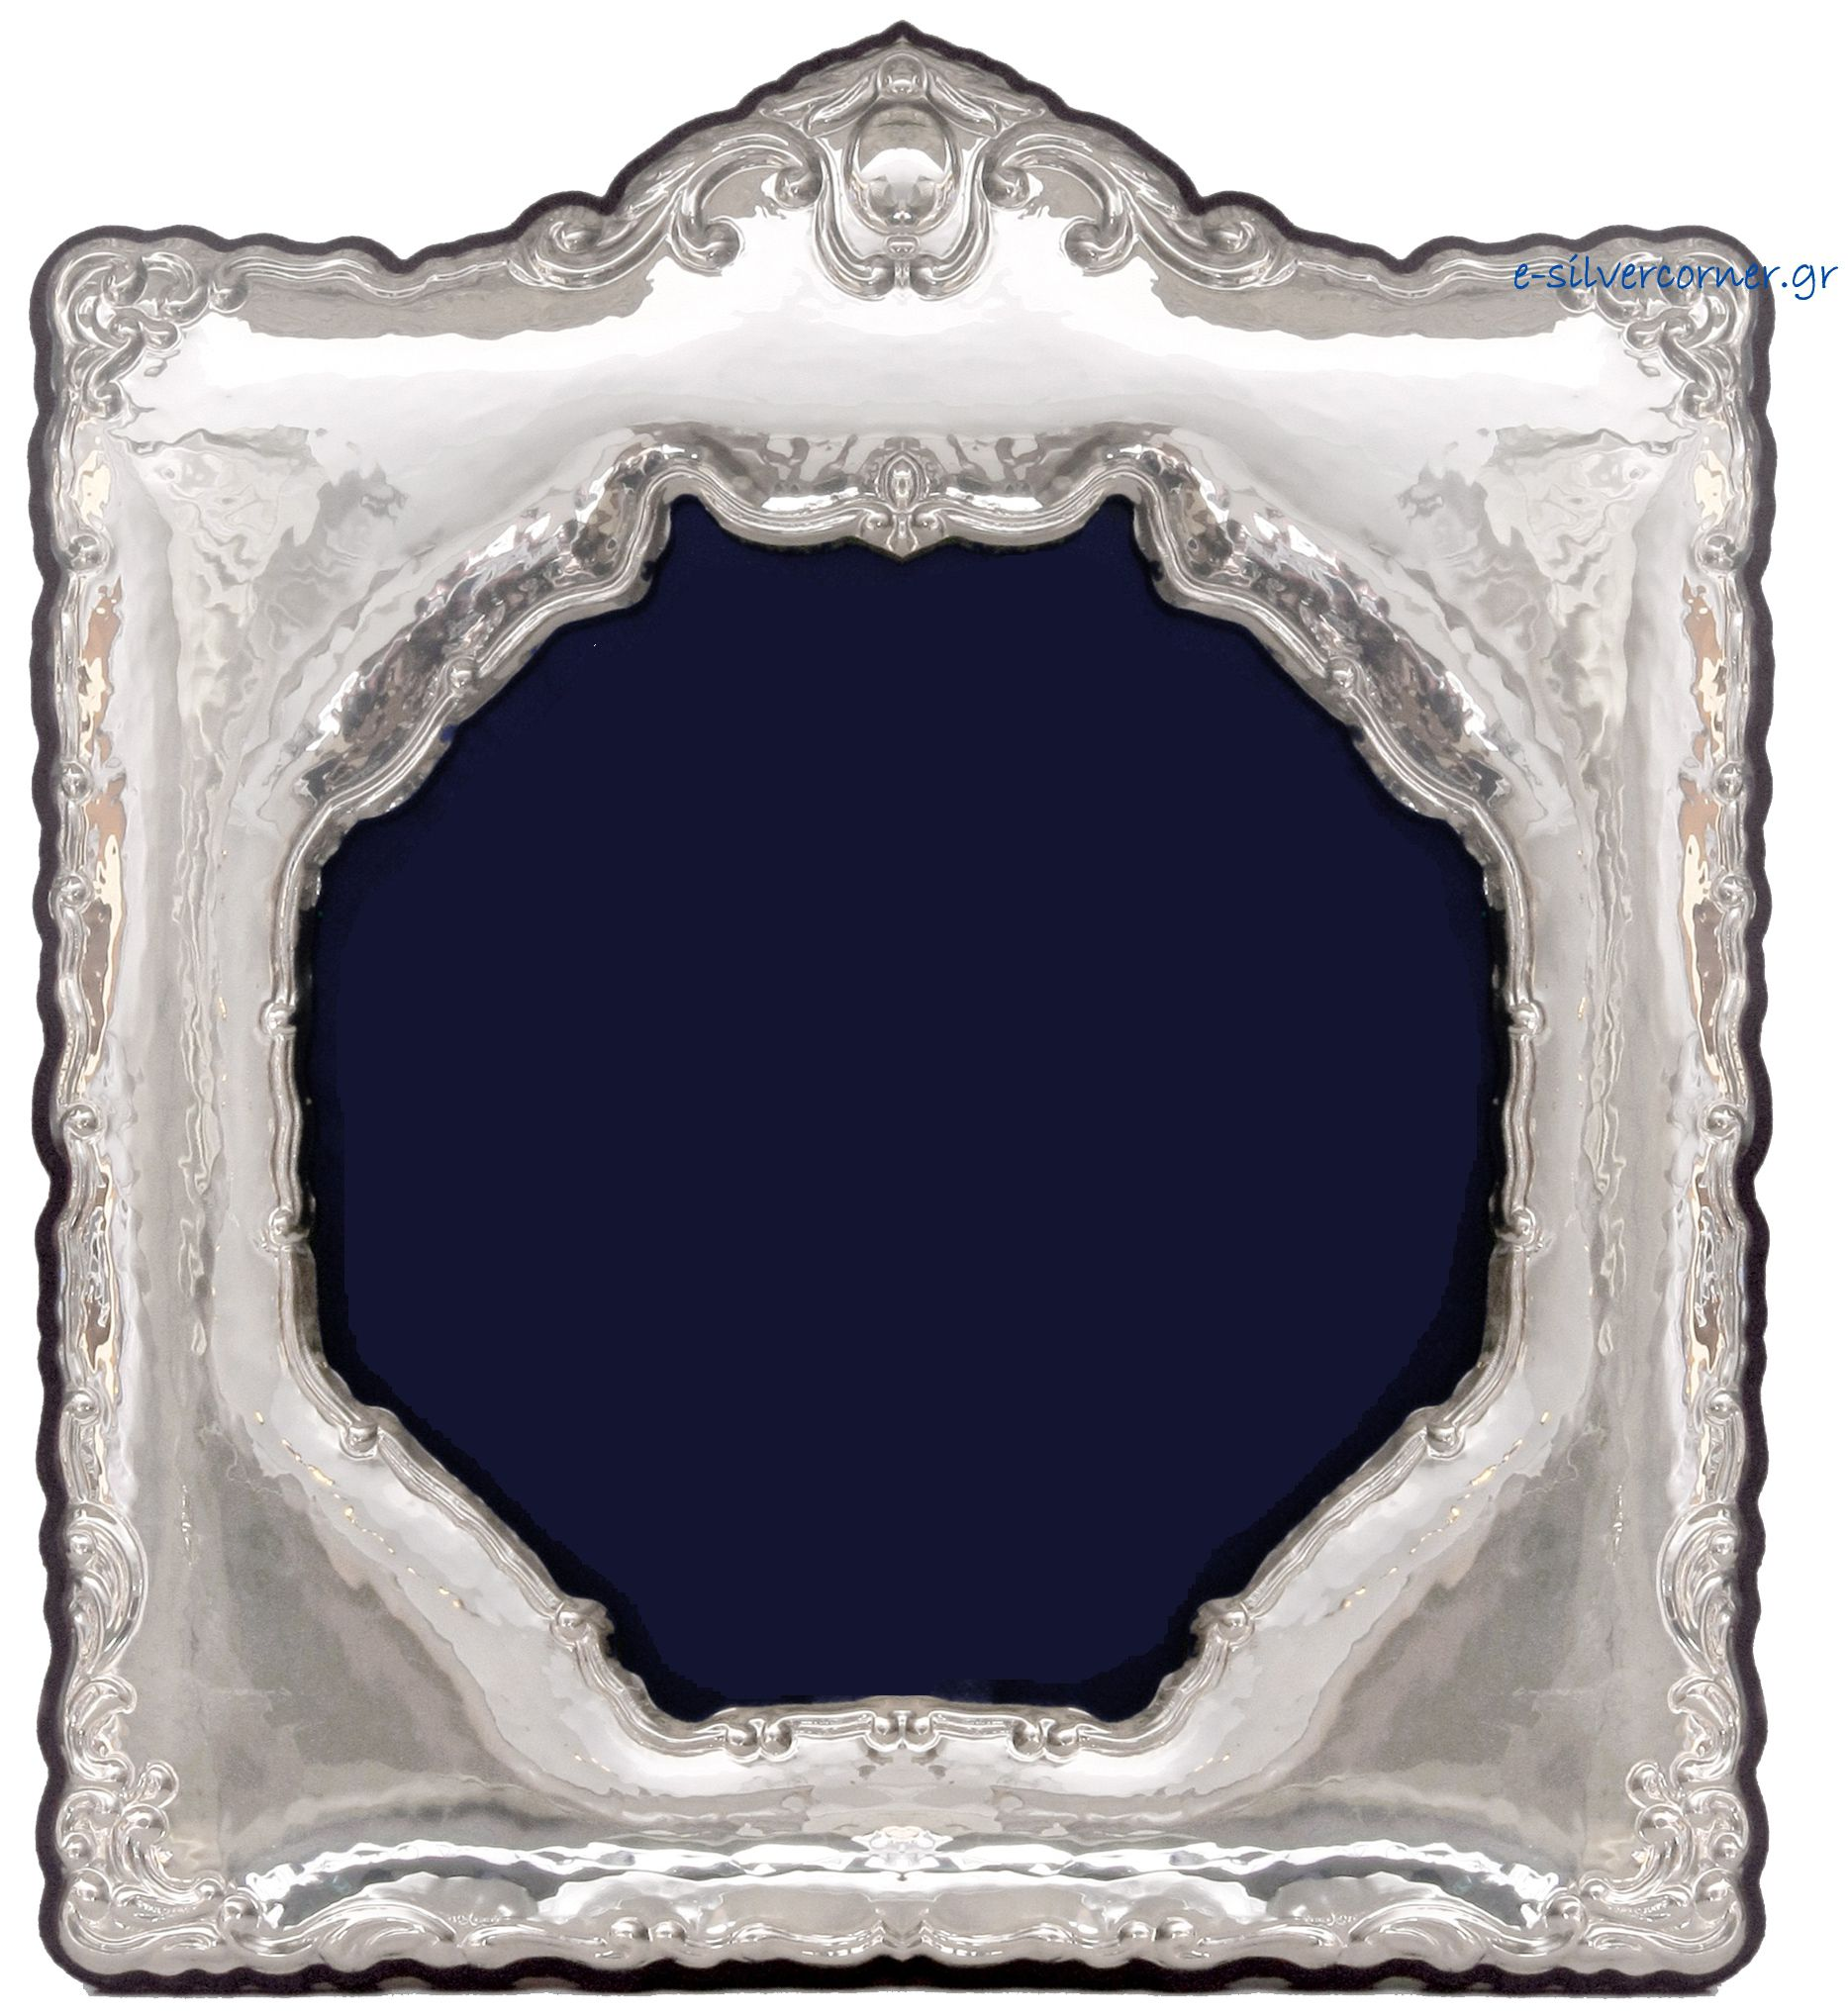 Sterling silver photo frame - Antique Reproduction - E-Silvercorner